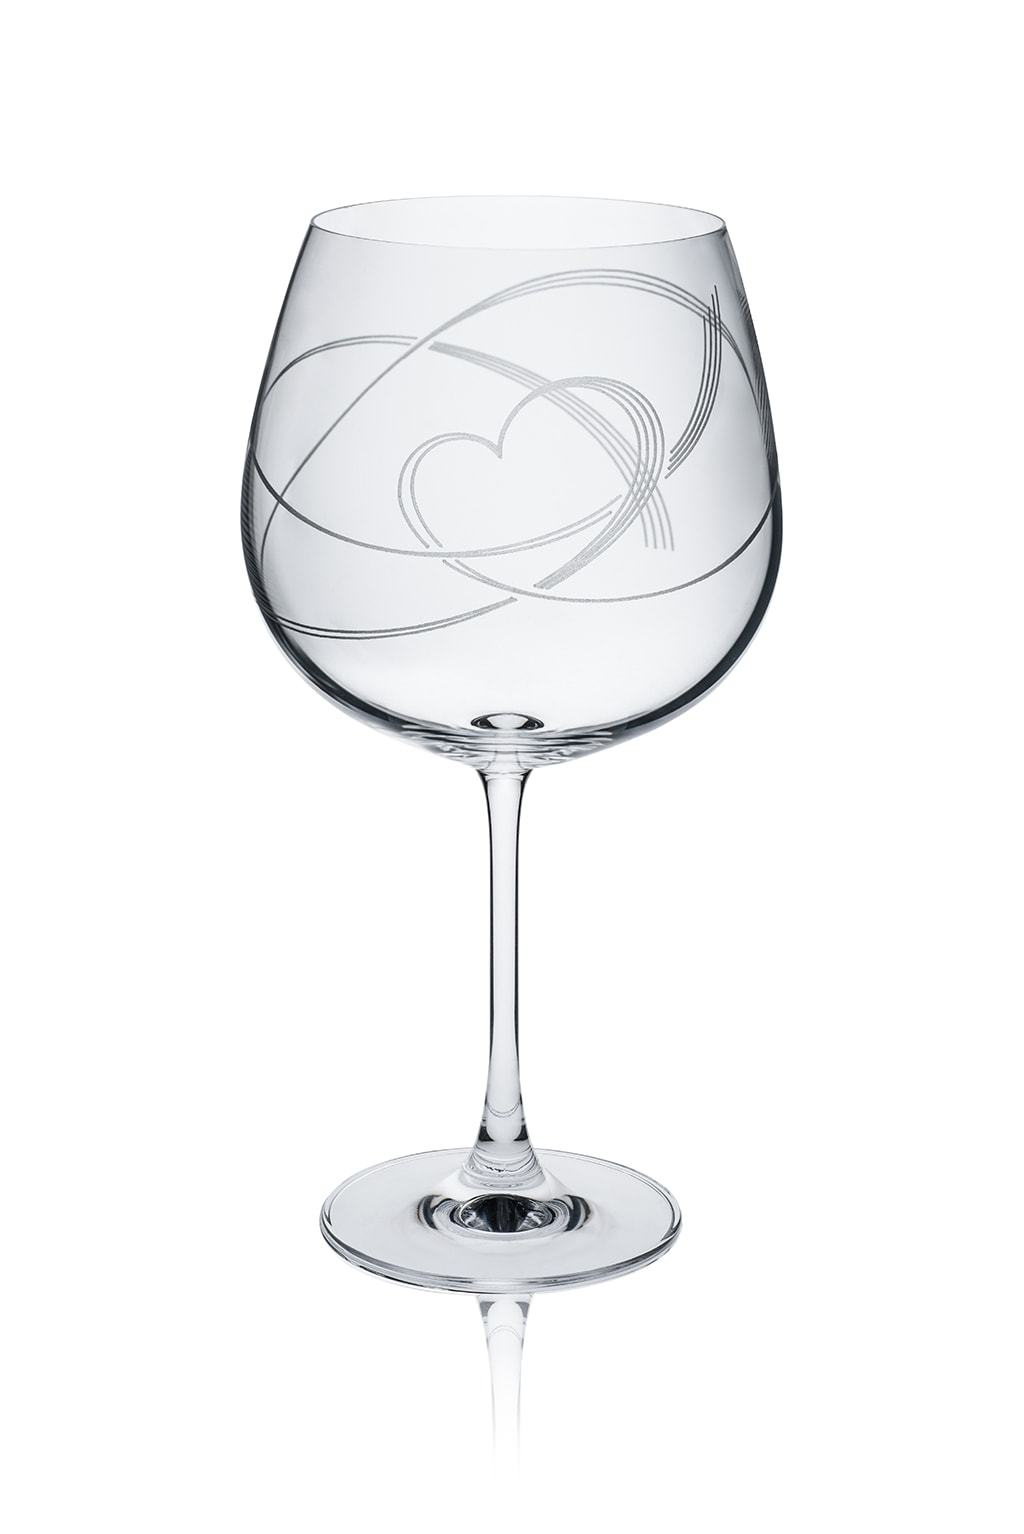 Swirl Heart Gin Glass - part of set of 6 drinking glasses